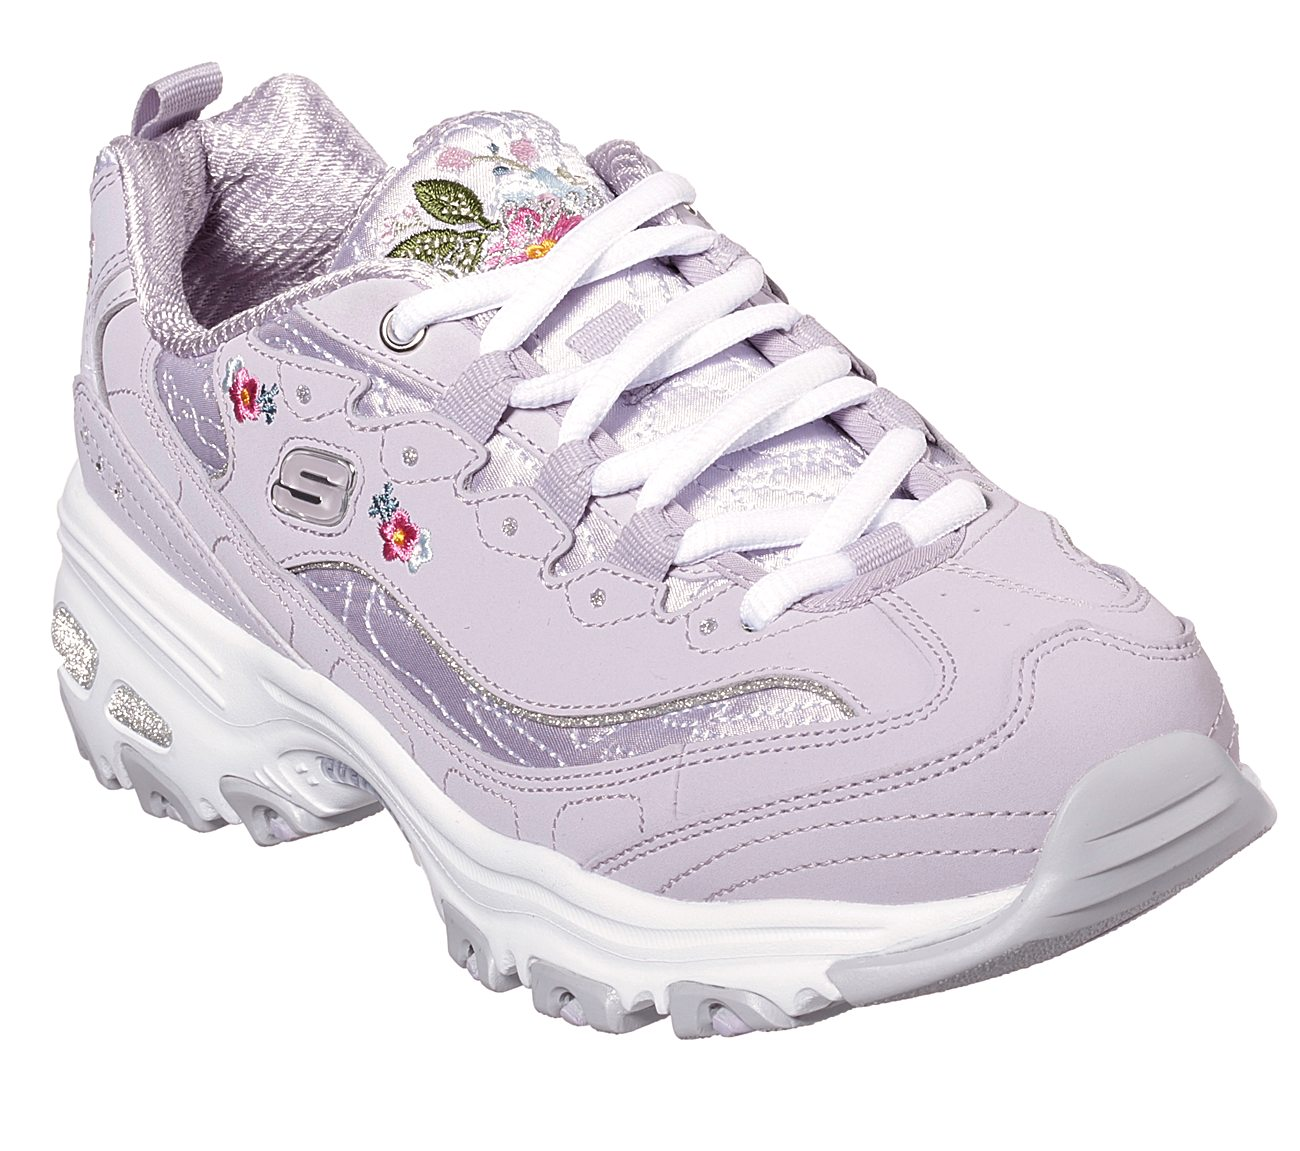 dd59c4091bb Buy SKECHERS D Lites - Bright Blossoms D Lites Shoes only  70.00